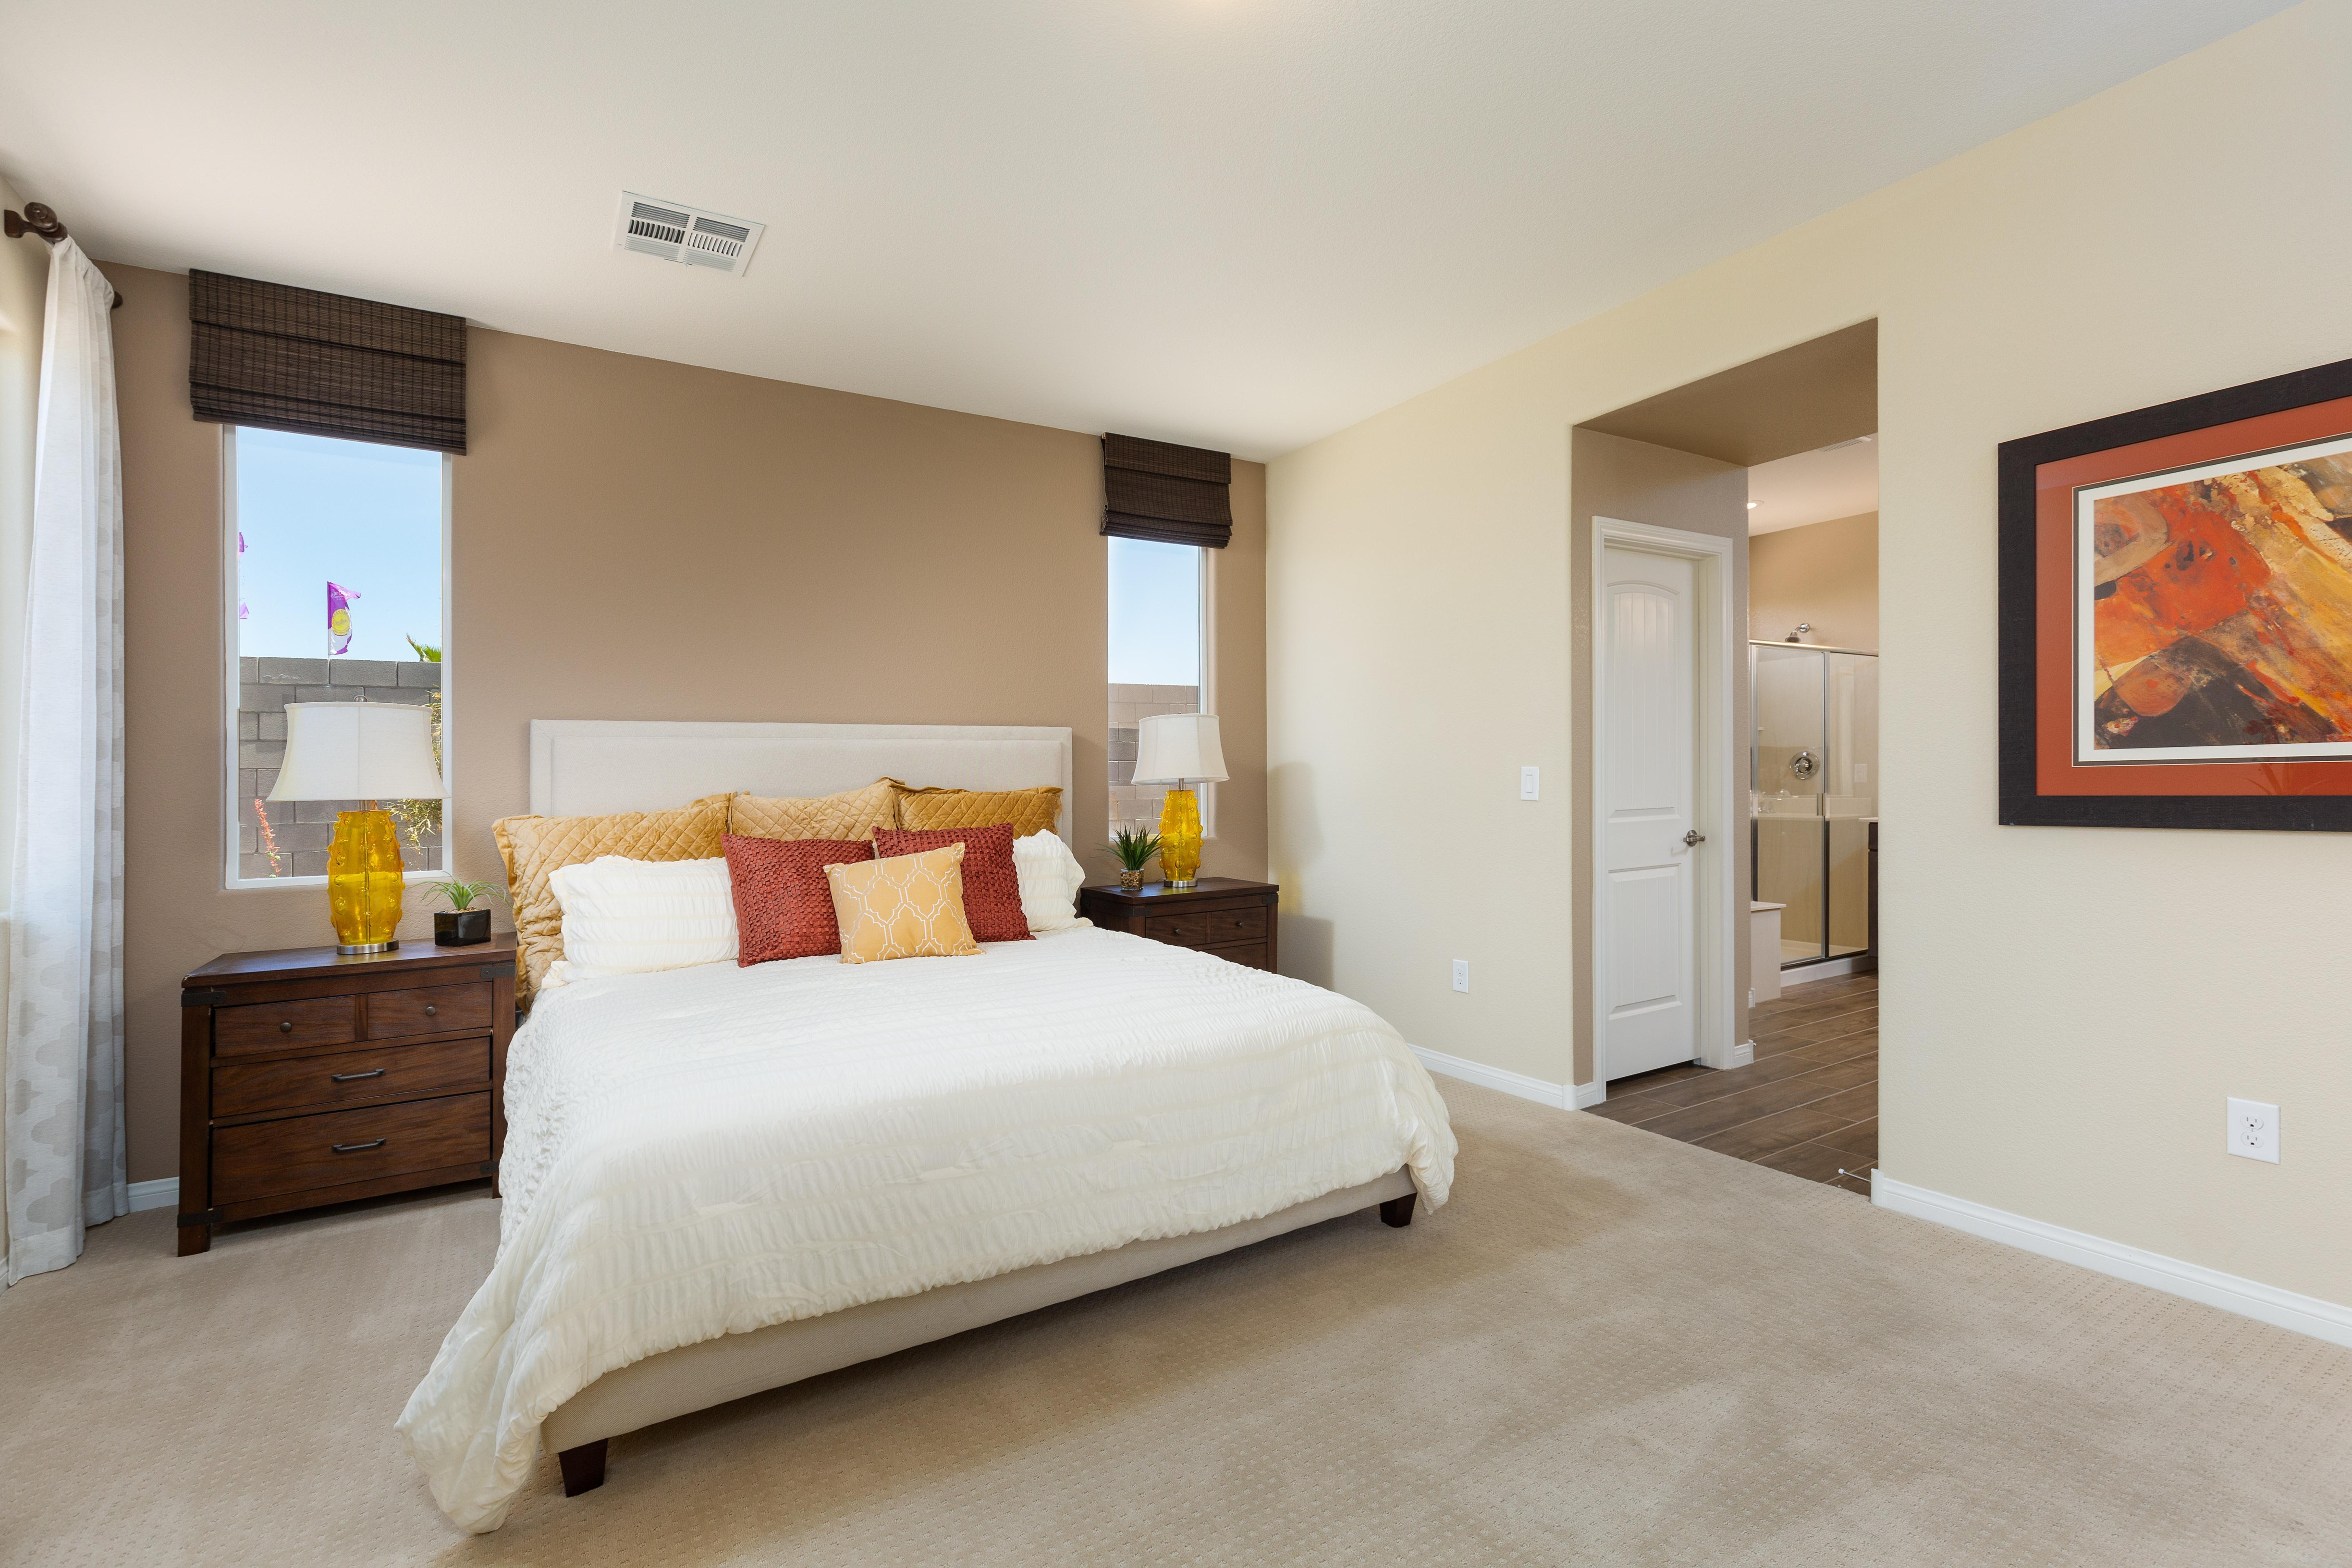 Bedroom featured in the Plan 2 By Storybook Homes in Las Vegas, NV